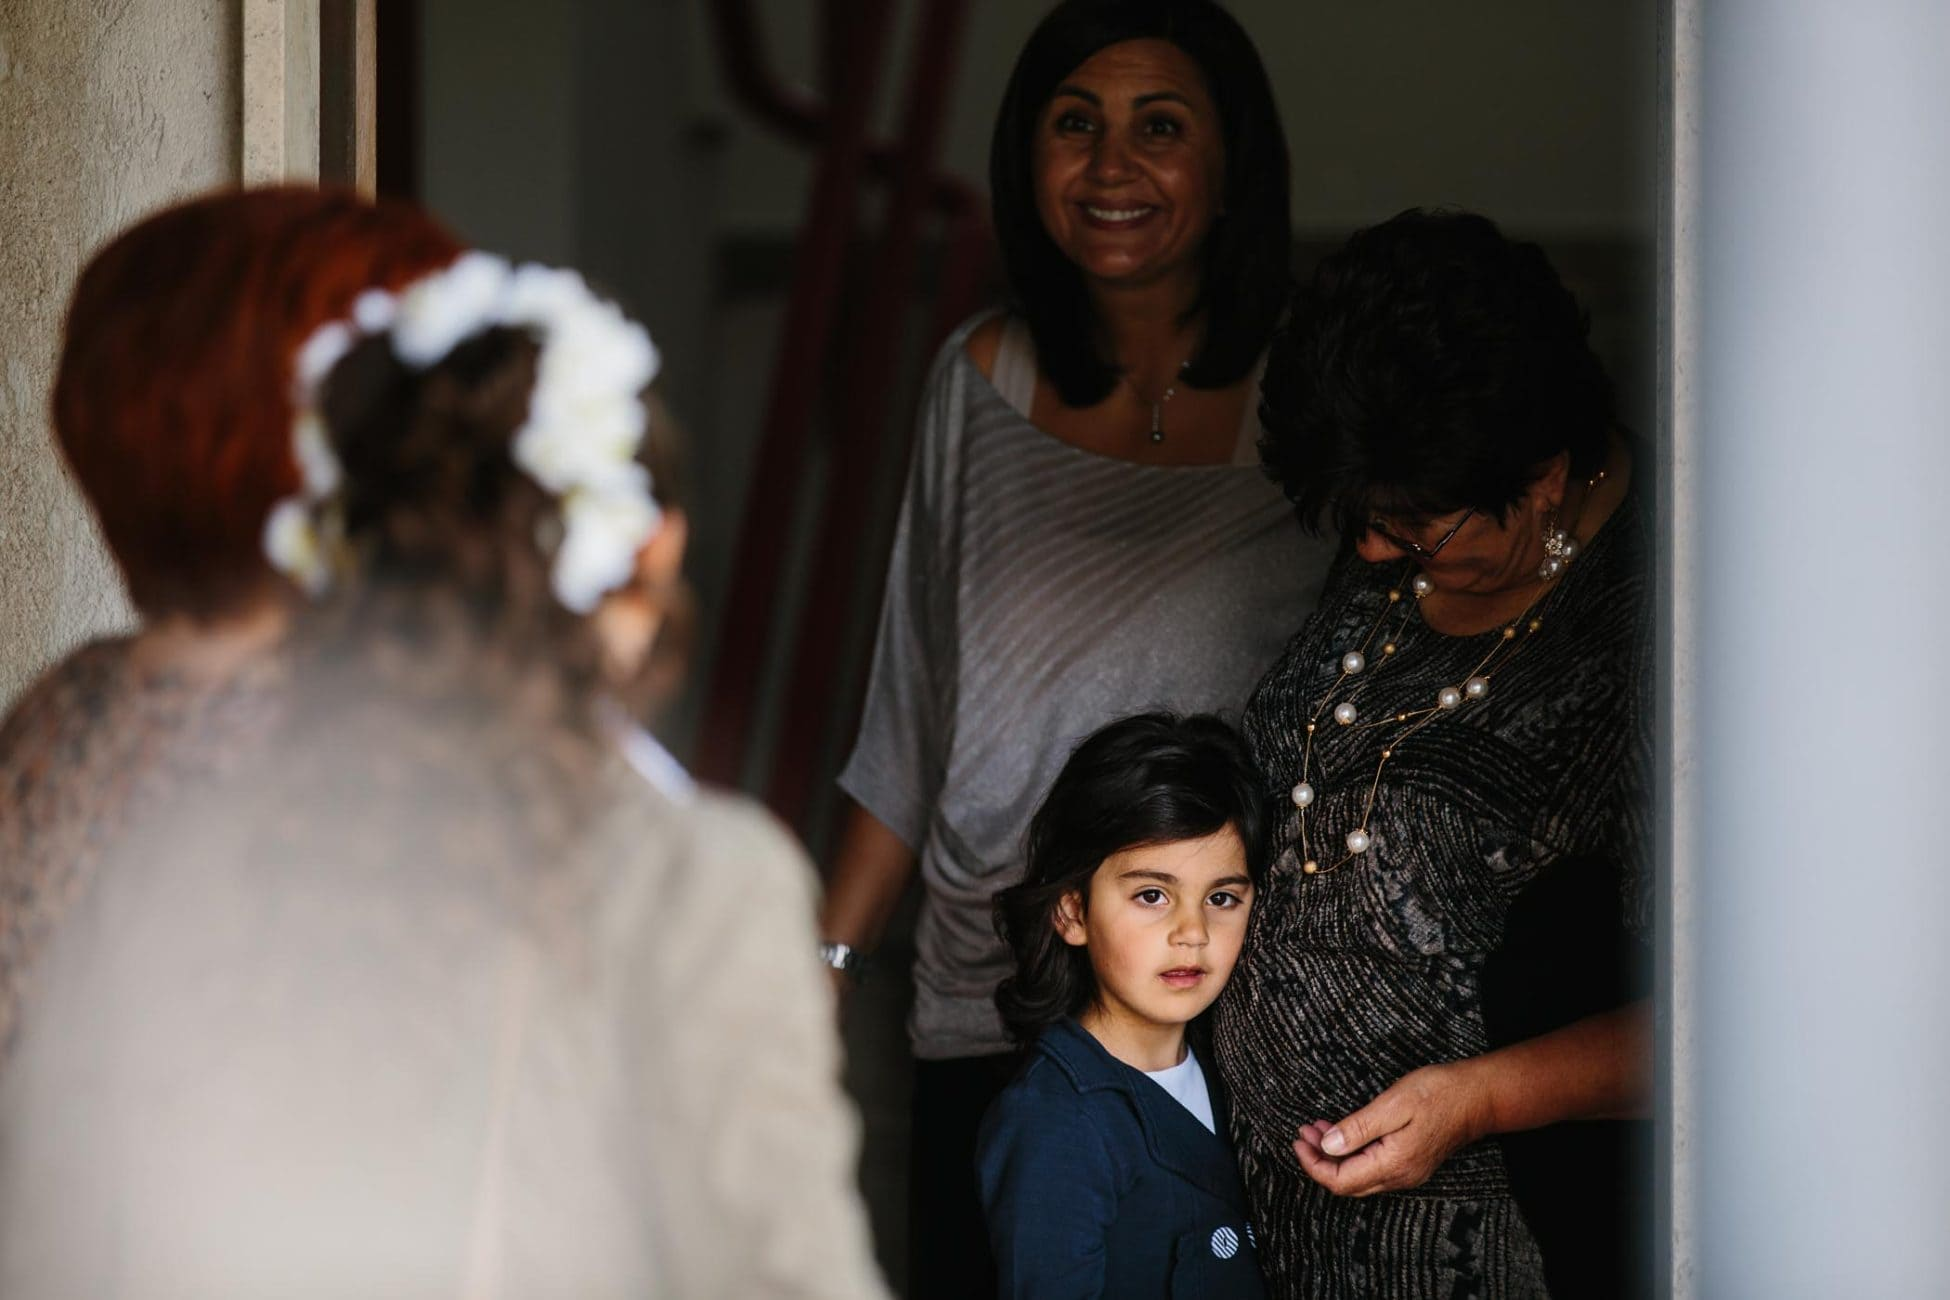 A little girl leans on an older woman's stomach in doorway with bride in foreground.